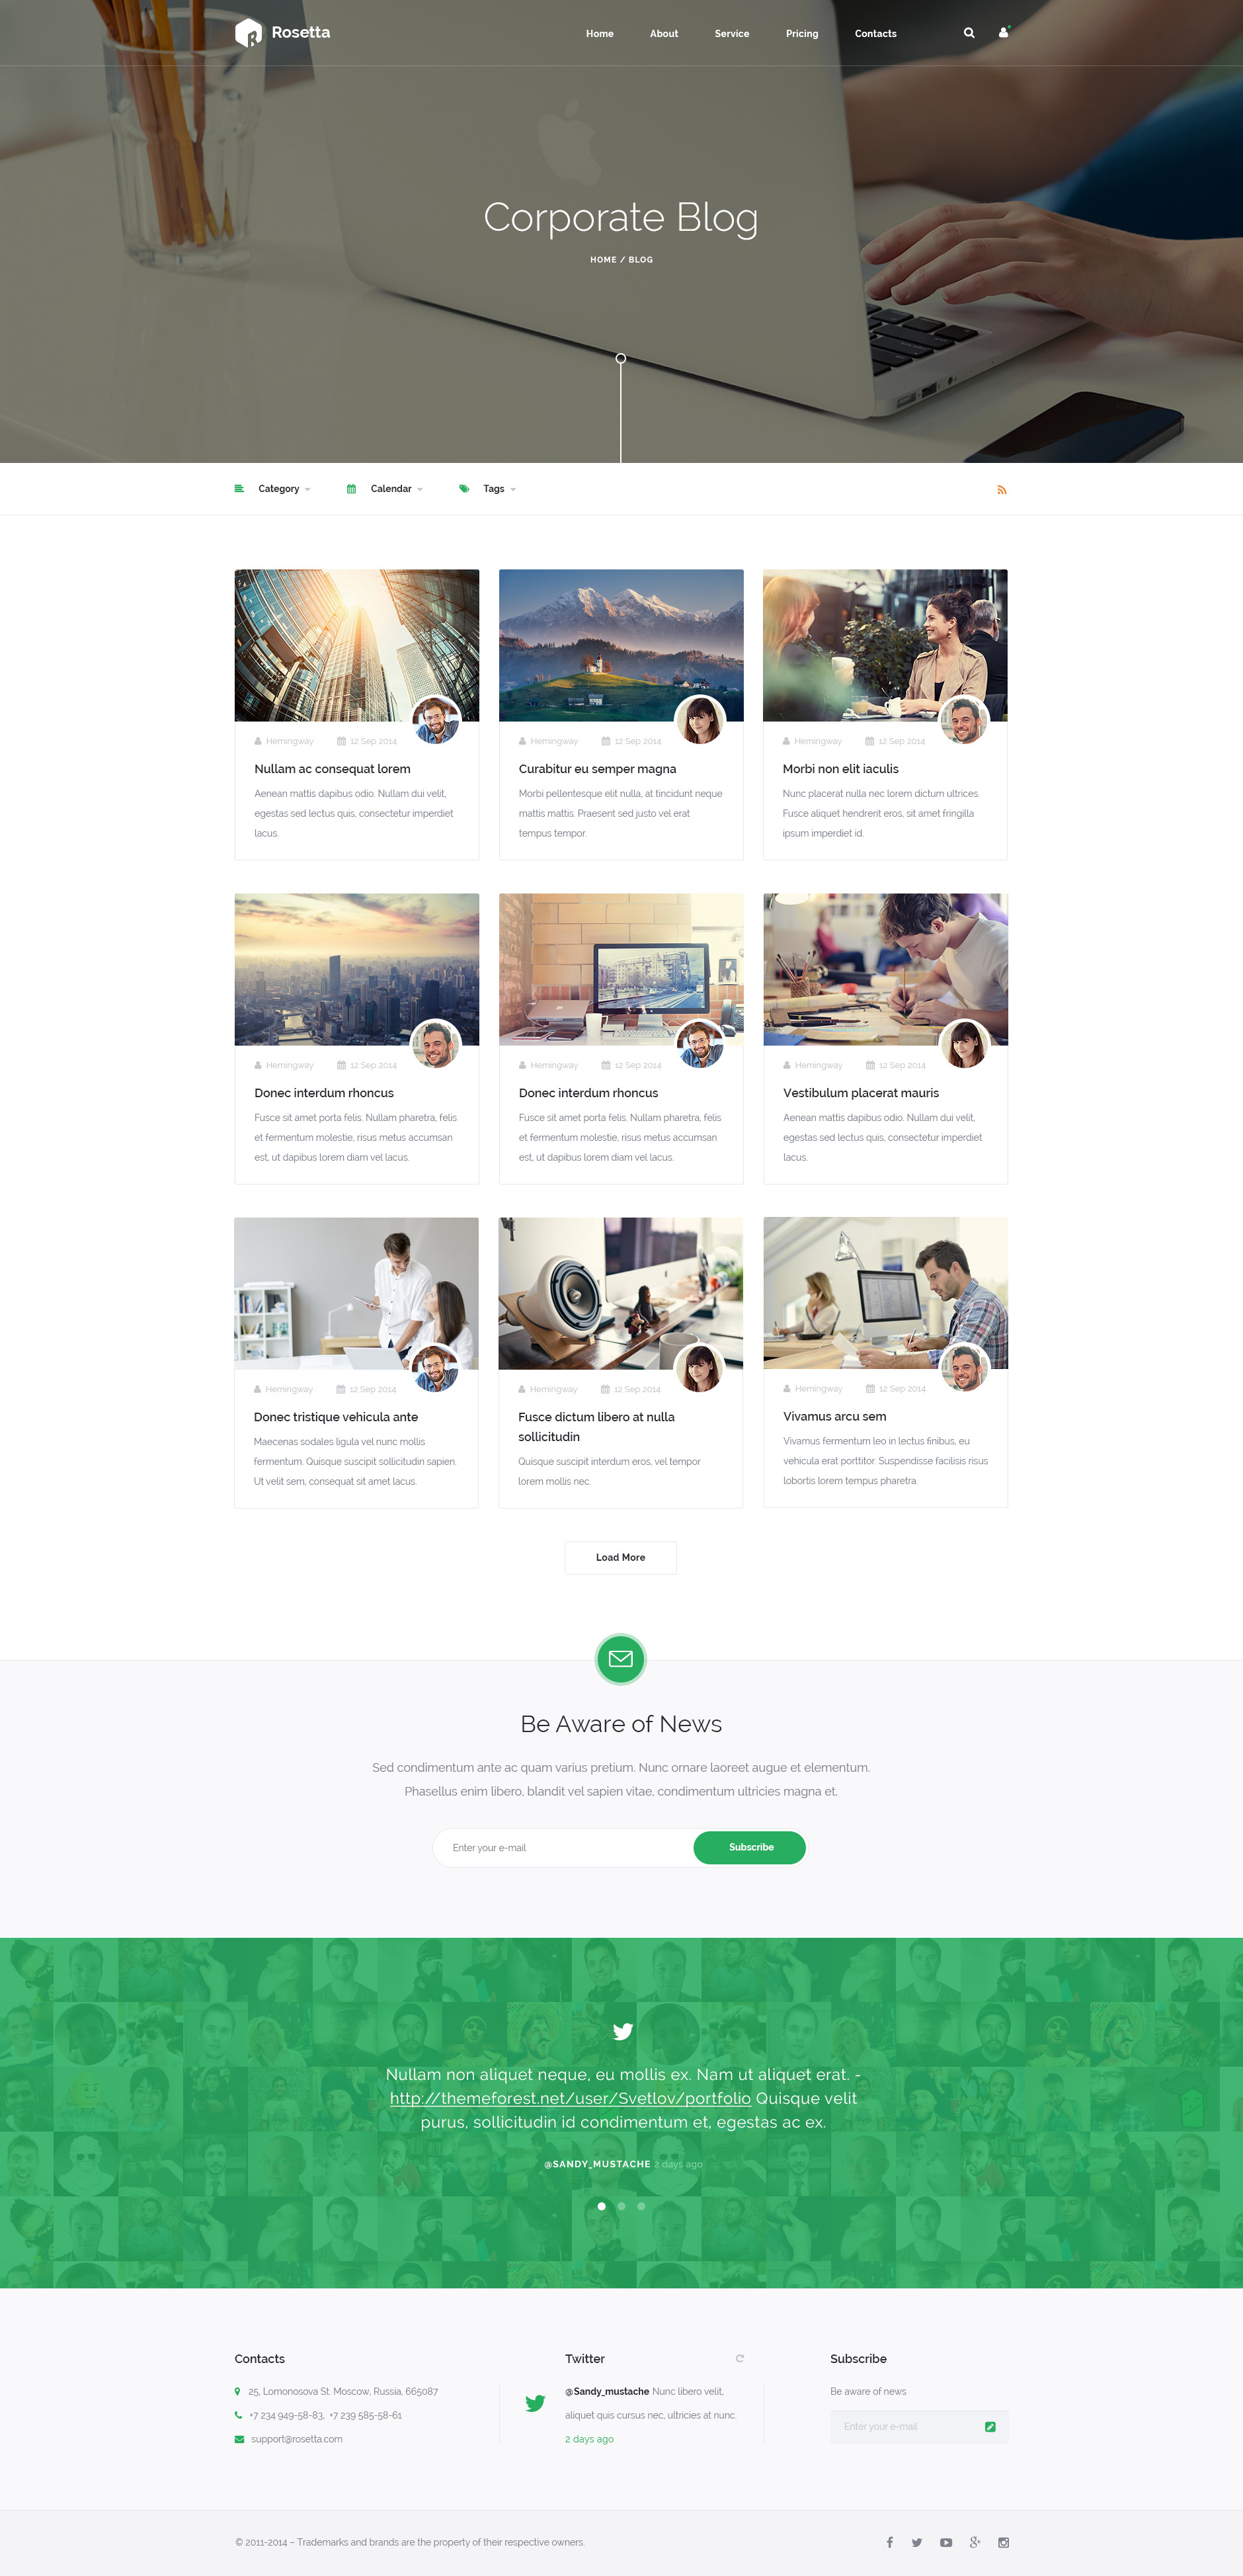 Famous 1 Page Proposal Template Tiny 1 Page Resume Format For Freshers Solid 10 Tips For Good Resume Writing 10 Window Envelope Template Youthful 100 Chart Template Fresh2 Page Resume Header Rosetta   Multipurpose HTML Template By Svetlov | ThemeForest